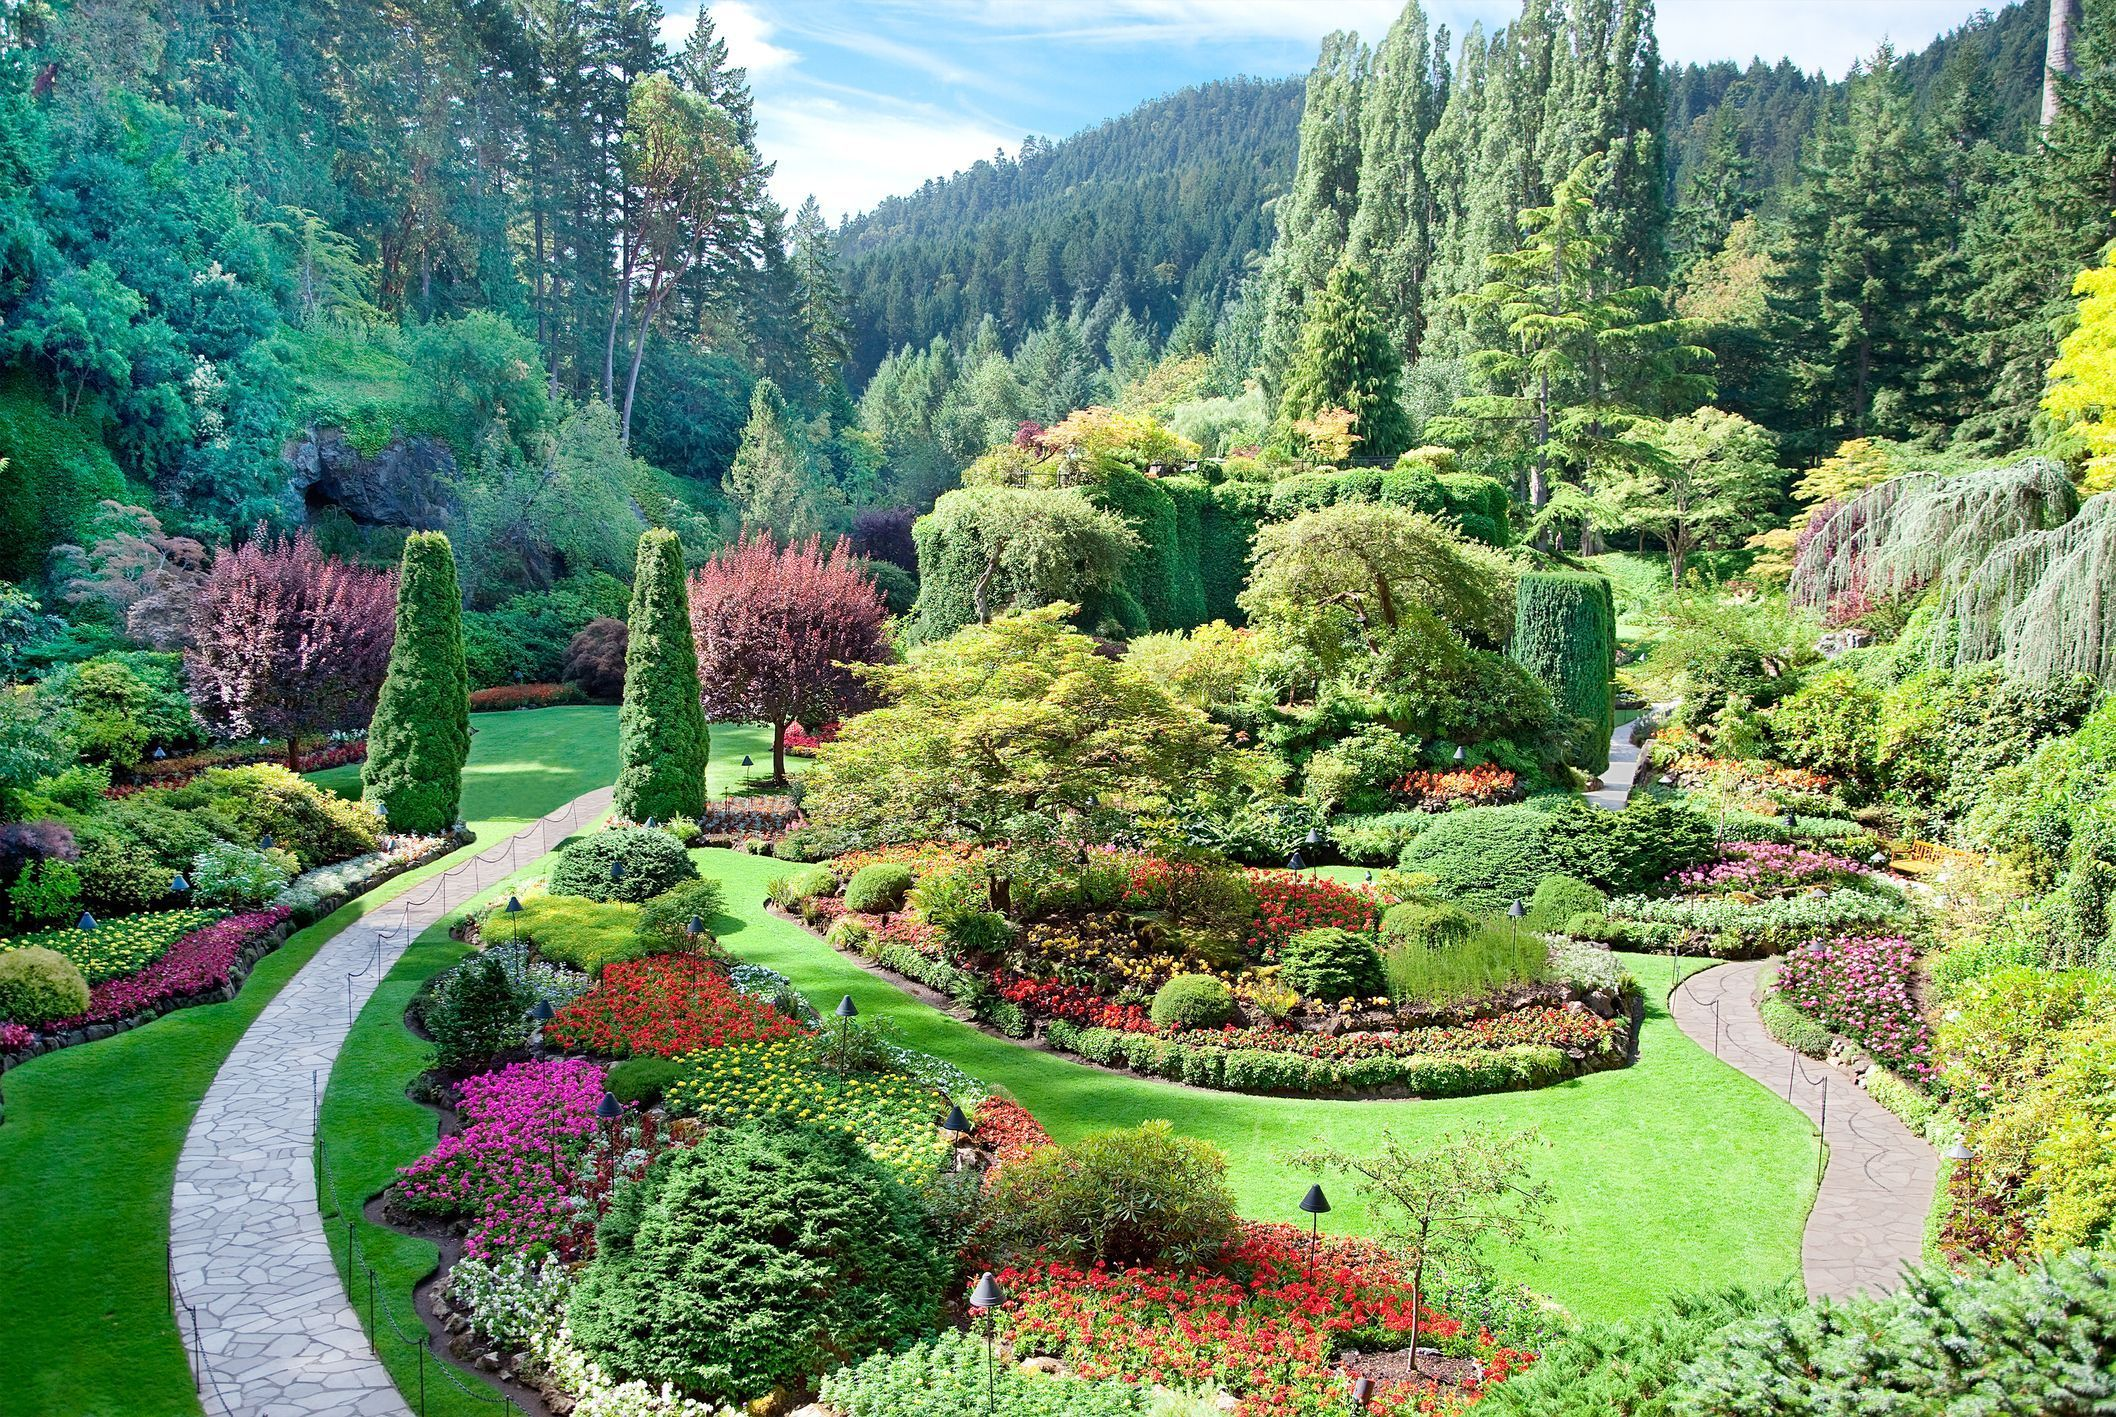 Butchart Gardens – Top 20 Places To Visit In Canada In 2019 #butchartgardens Butchart Gardens – Top 20 Places To Visit In Canada In 2019 #butchartgardens Butchart Gardens – Top 20 Places To Visit In Canada In 2019 #butchartgardens Butchart Gardens – Top 20 Places To Visit In Canada In 2019 #butchartgardens